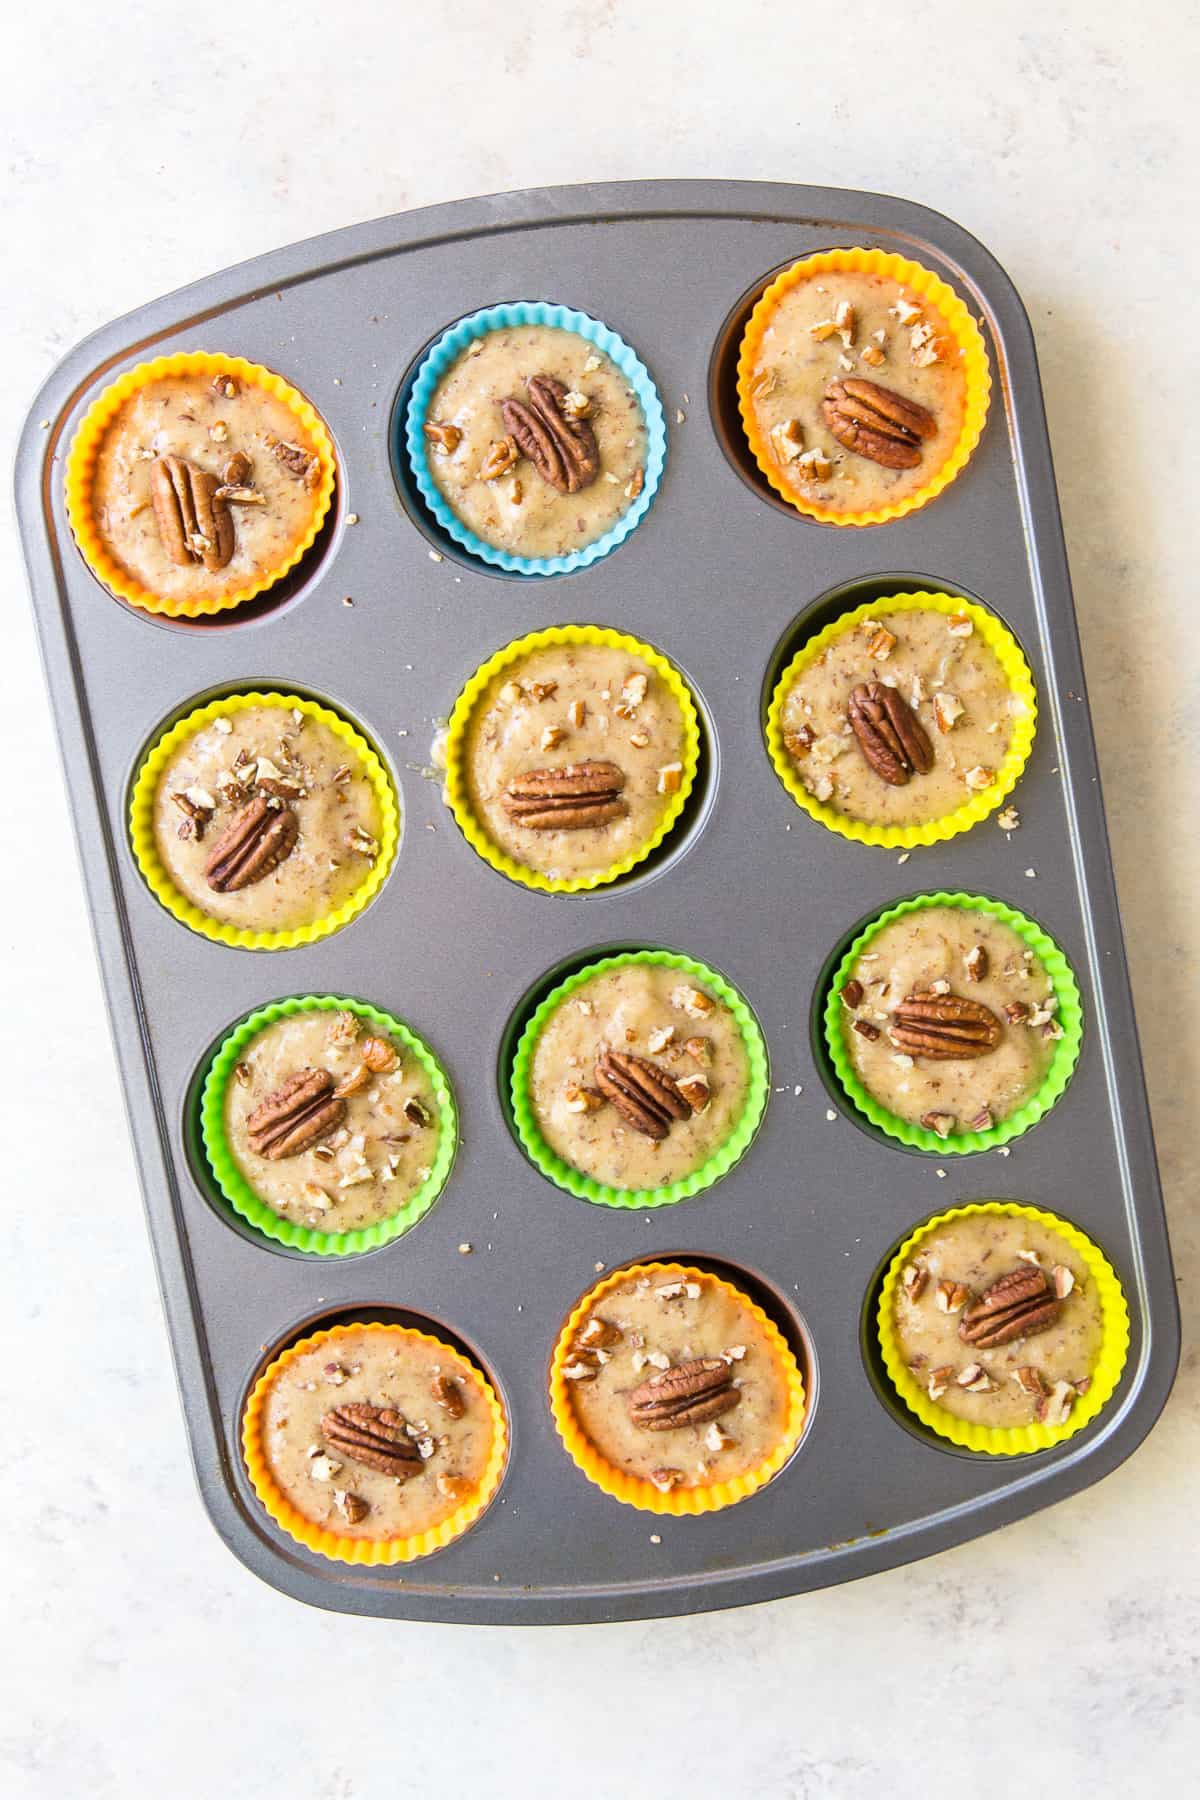 Muffin batter in colorful silicone baking cups in a muffin pan.